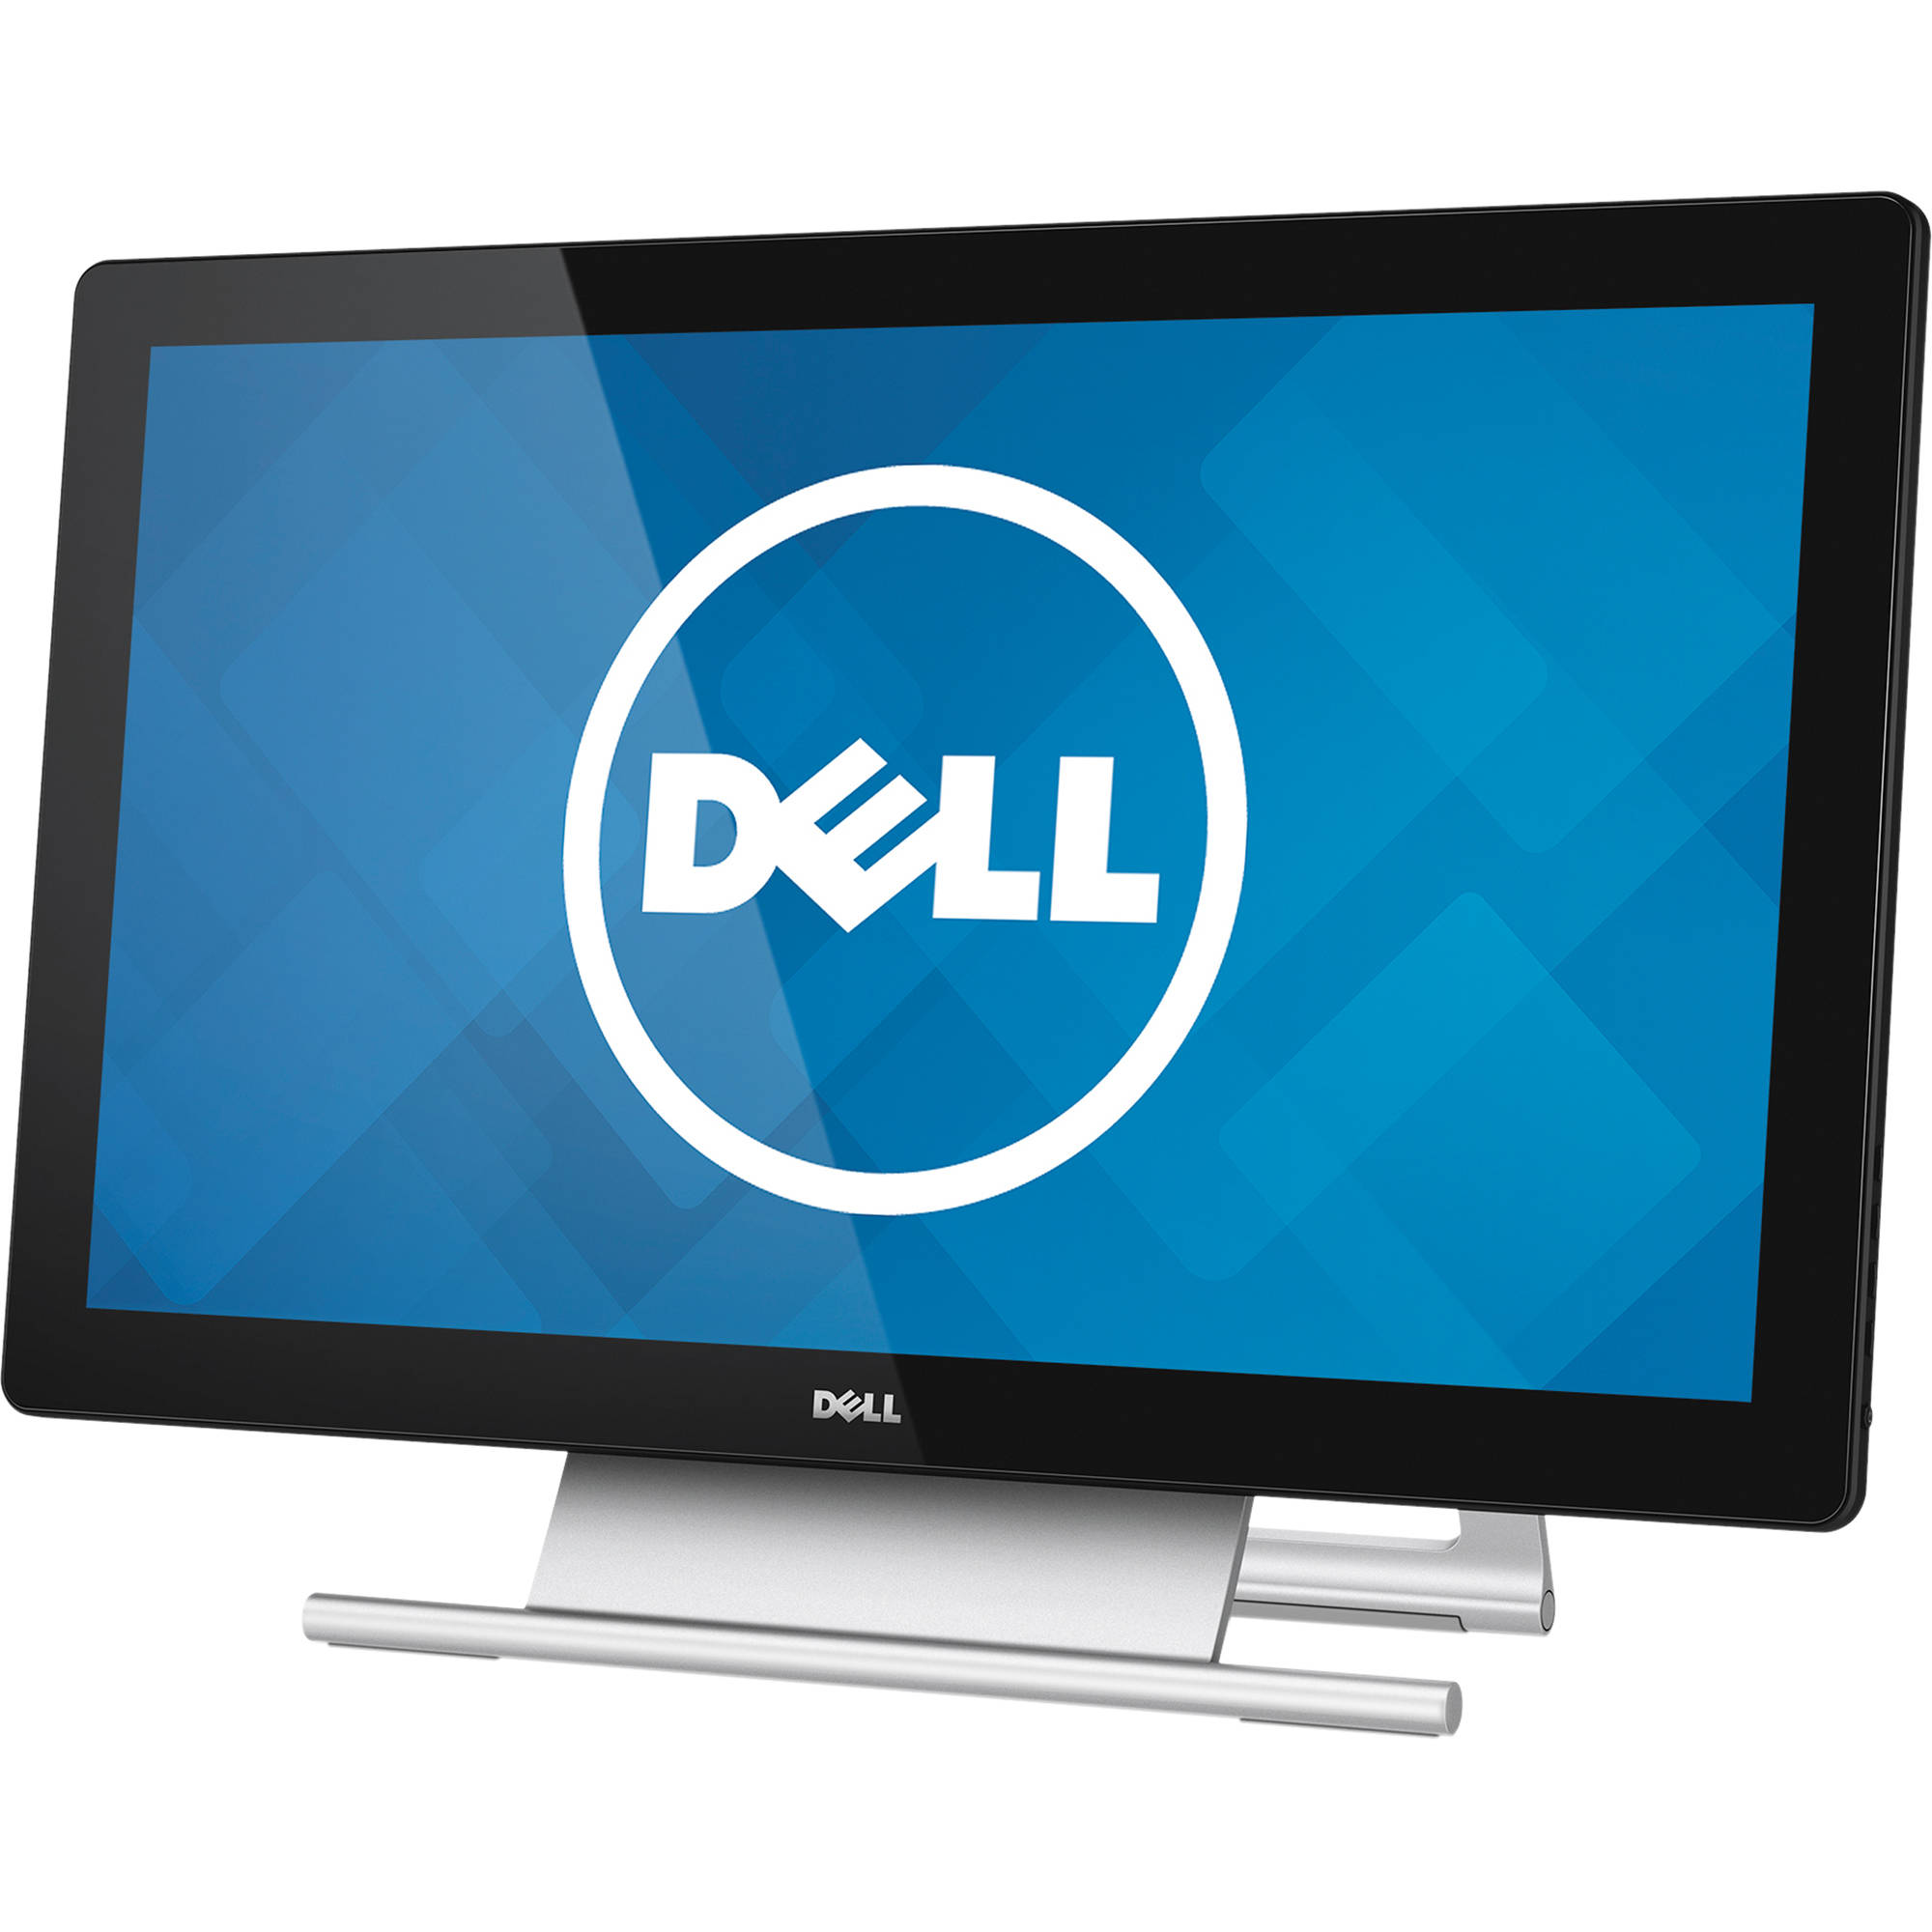 dell p2314t 23 led backlit ips lcd touch monitor p2314t. Black Bedroom Furniture Sets. Home Design Ideas